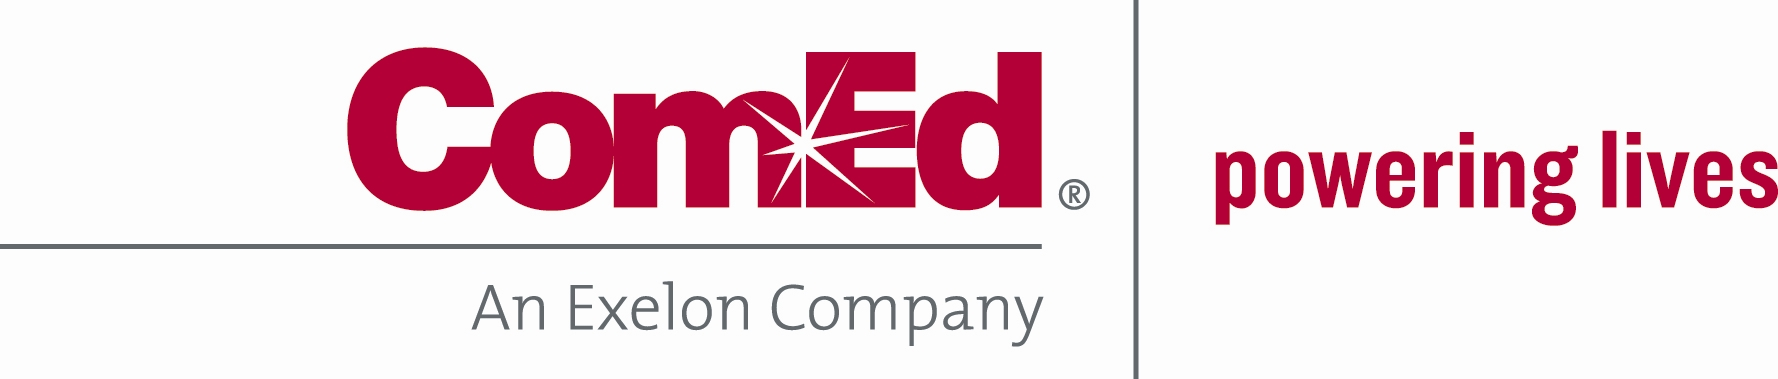 ComEd Powering Lives color.JPG